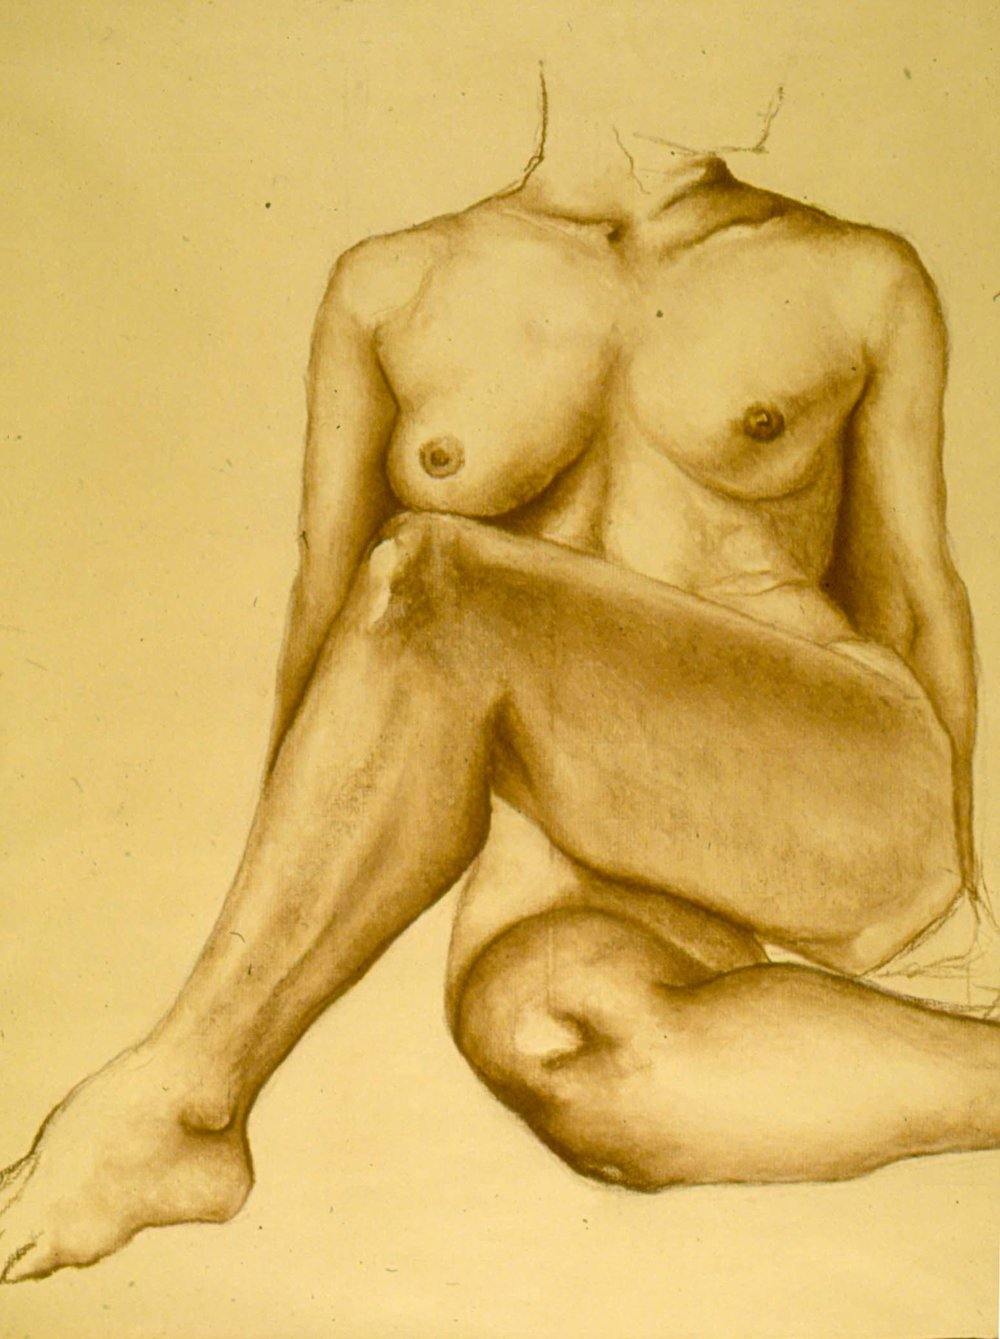 female form lifedrawing - conte crayon